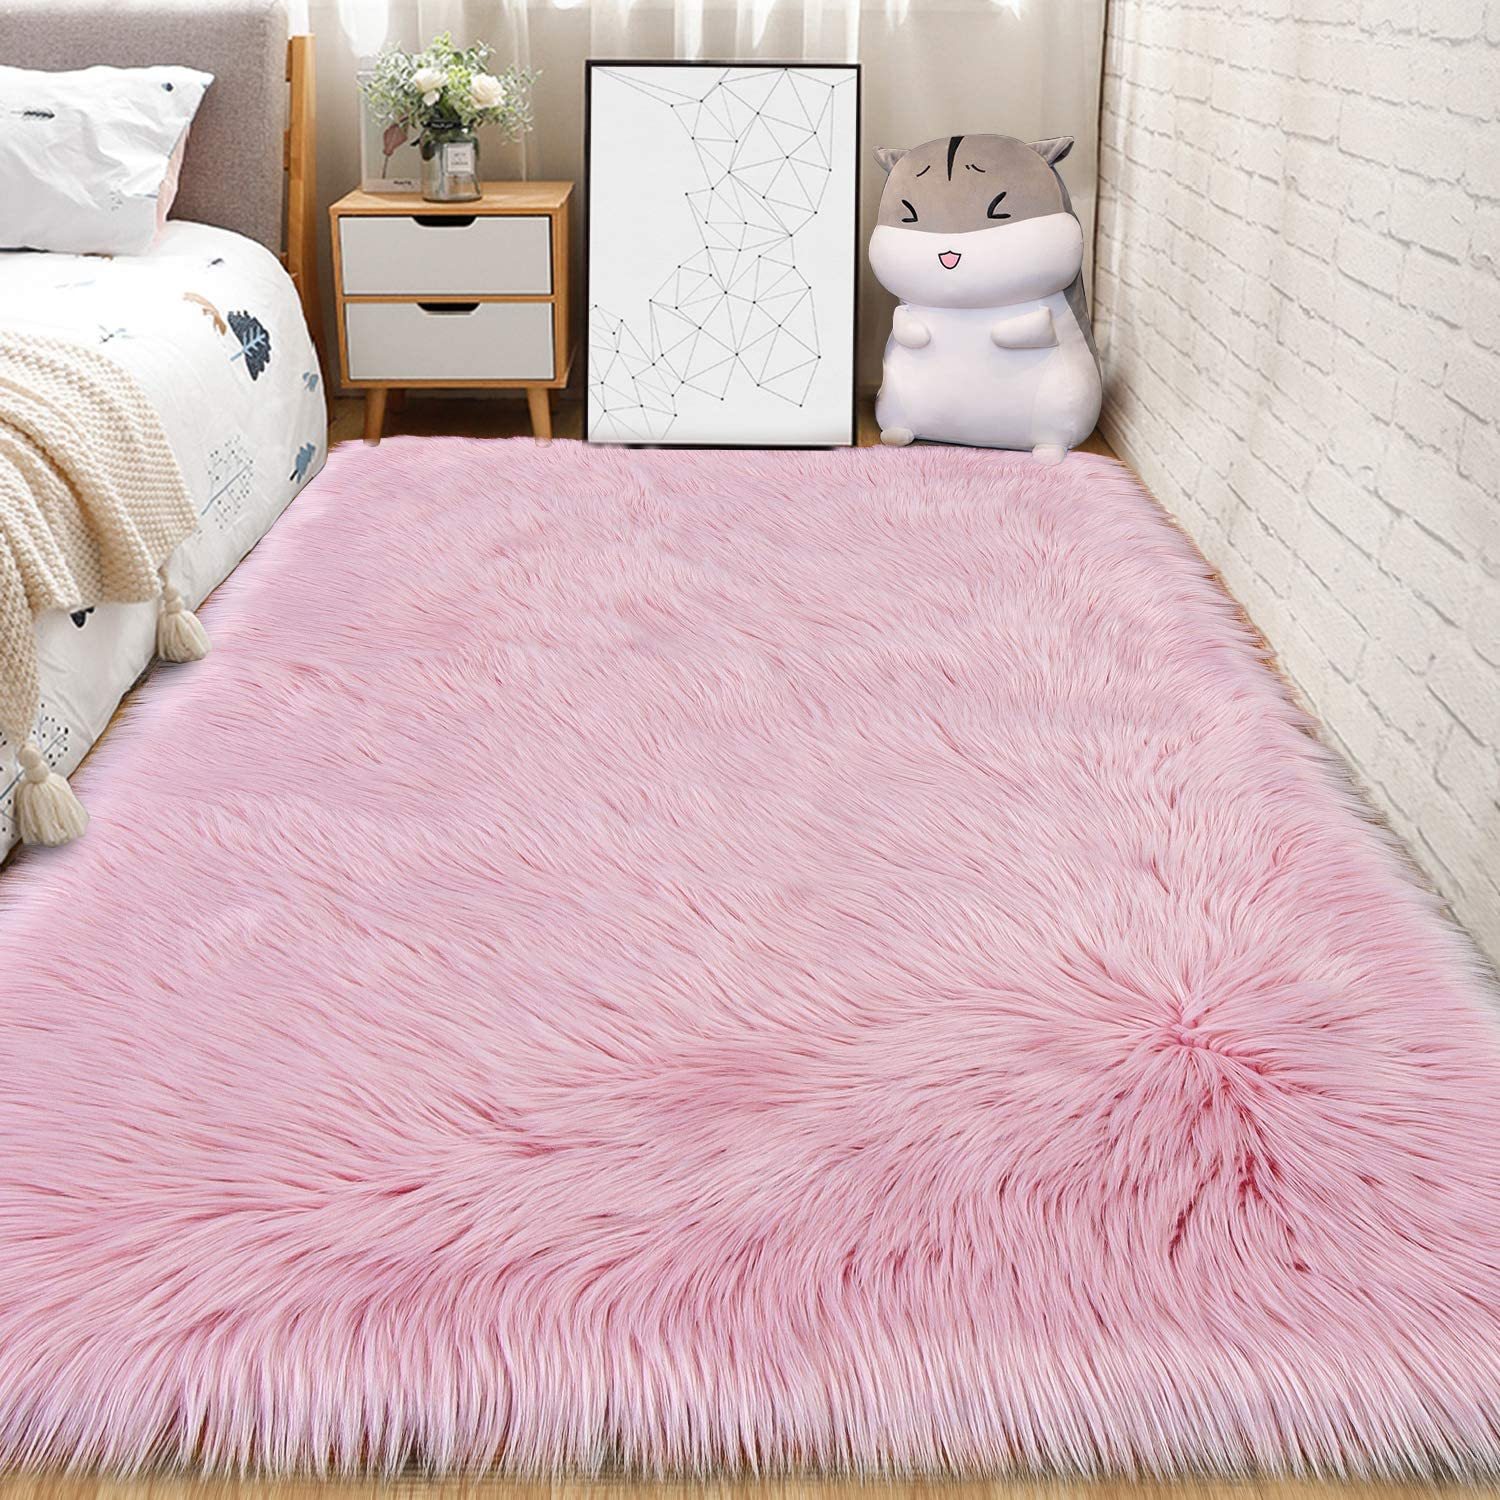 Andecor Soft Fluffy Faux Fur Bedroom Rugs 3 x 5 Feet Indoor Wool Sheepskin Area Rug for Girls Baby Living Room Chair Sofa Home Decor Floor Carpet, Pink